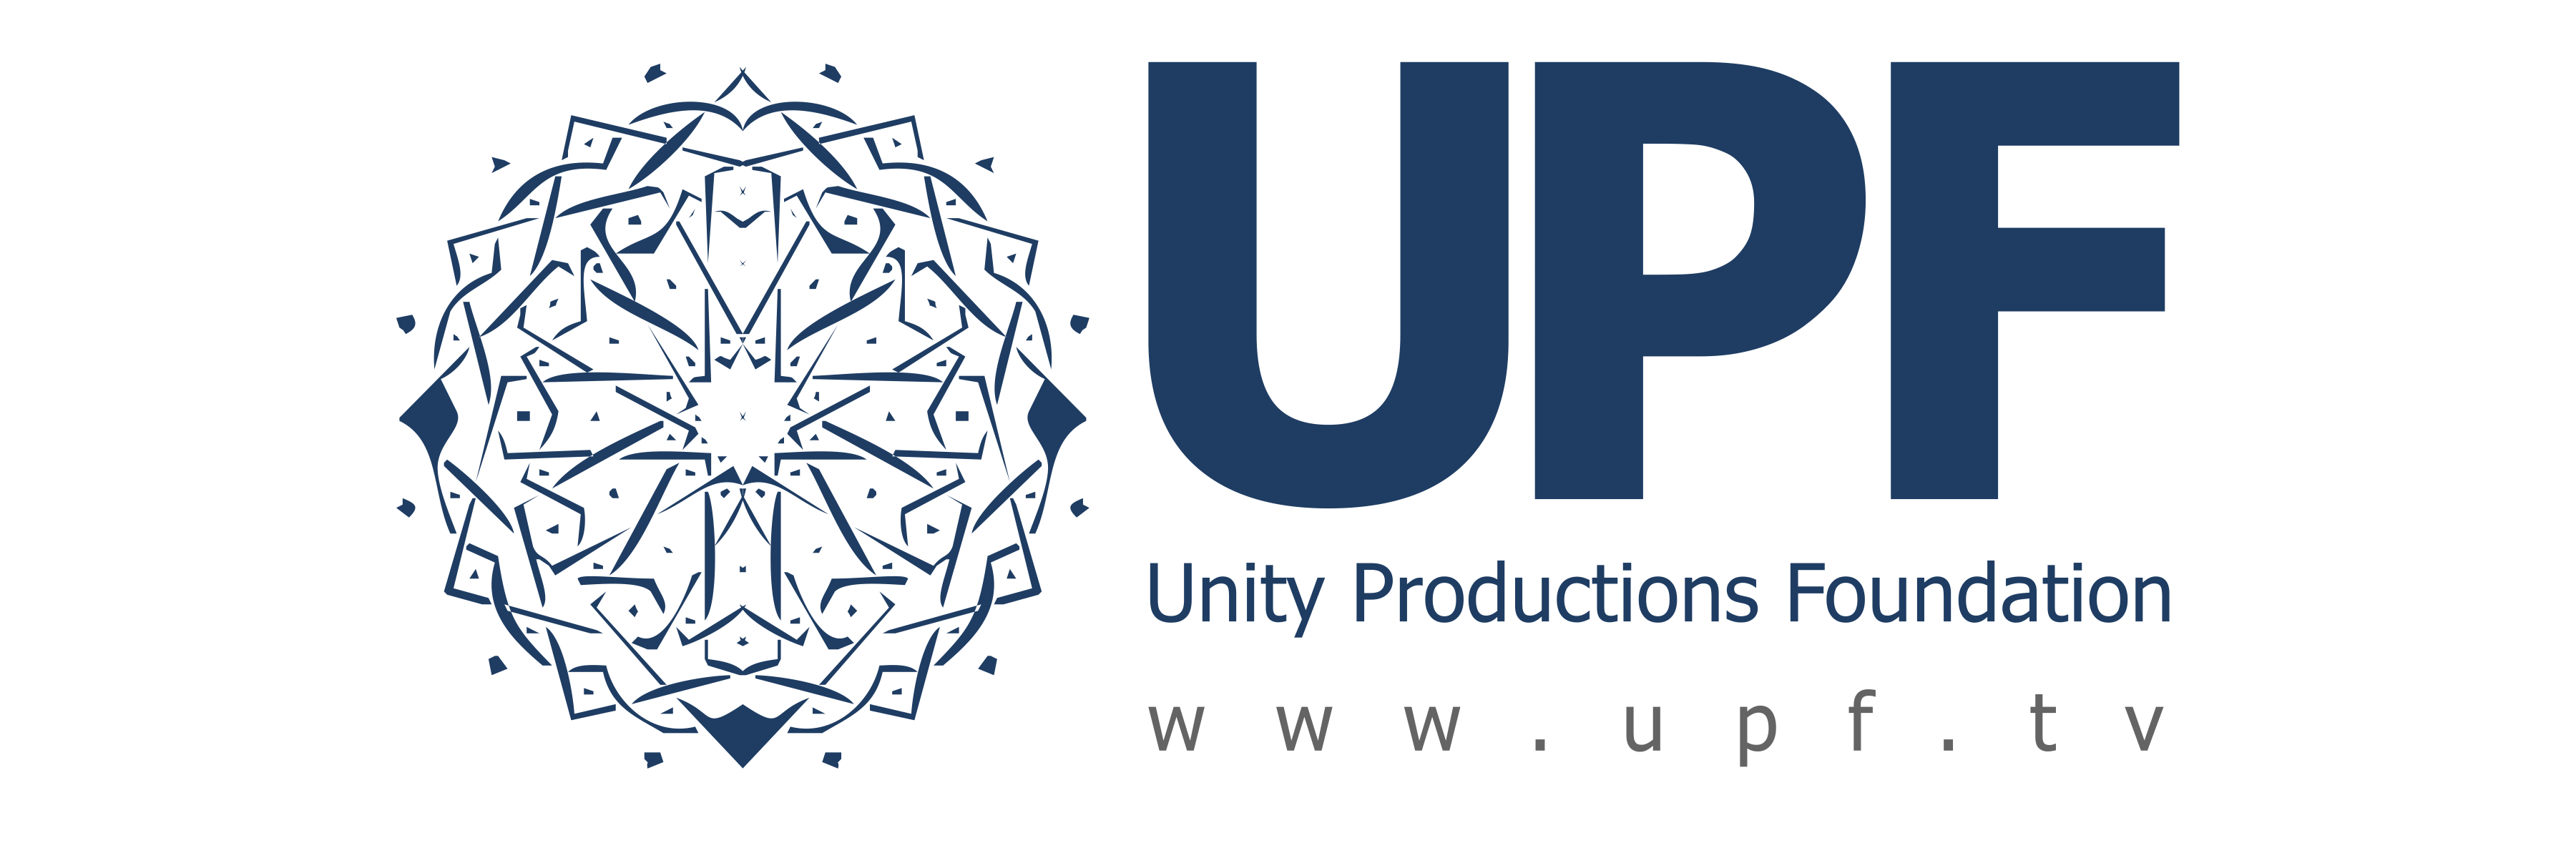 Upf logo high res